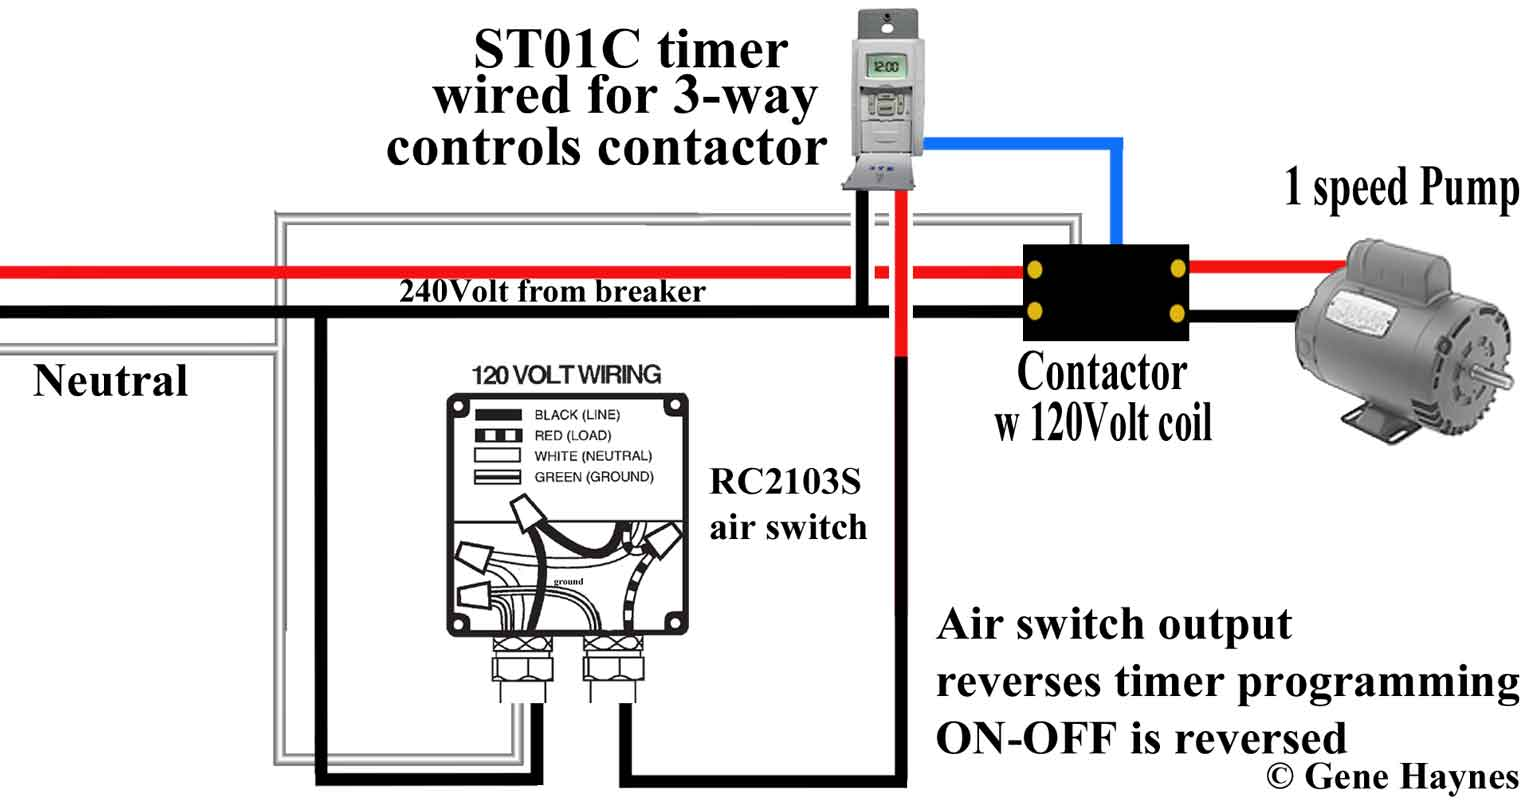 how to wire water heater with switches timers rh waterheatertimer org Single Phase Wiring Diagram Single Phase Wiring Diagram